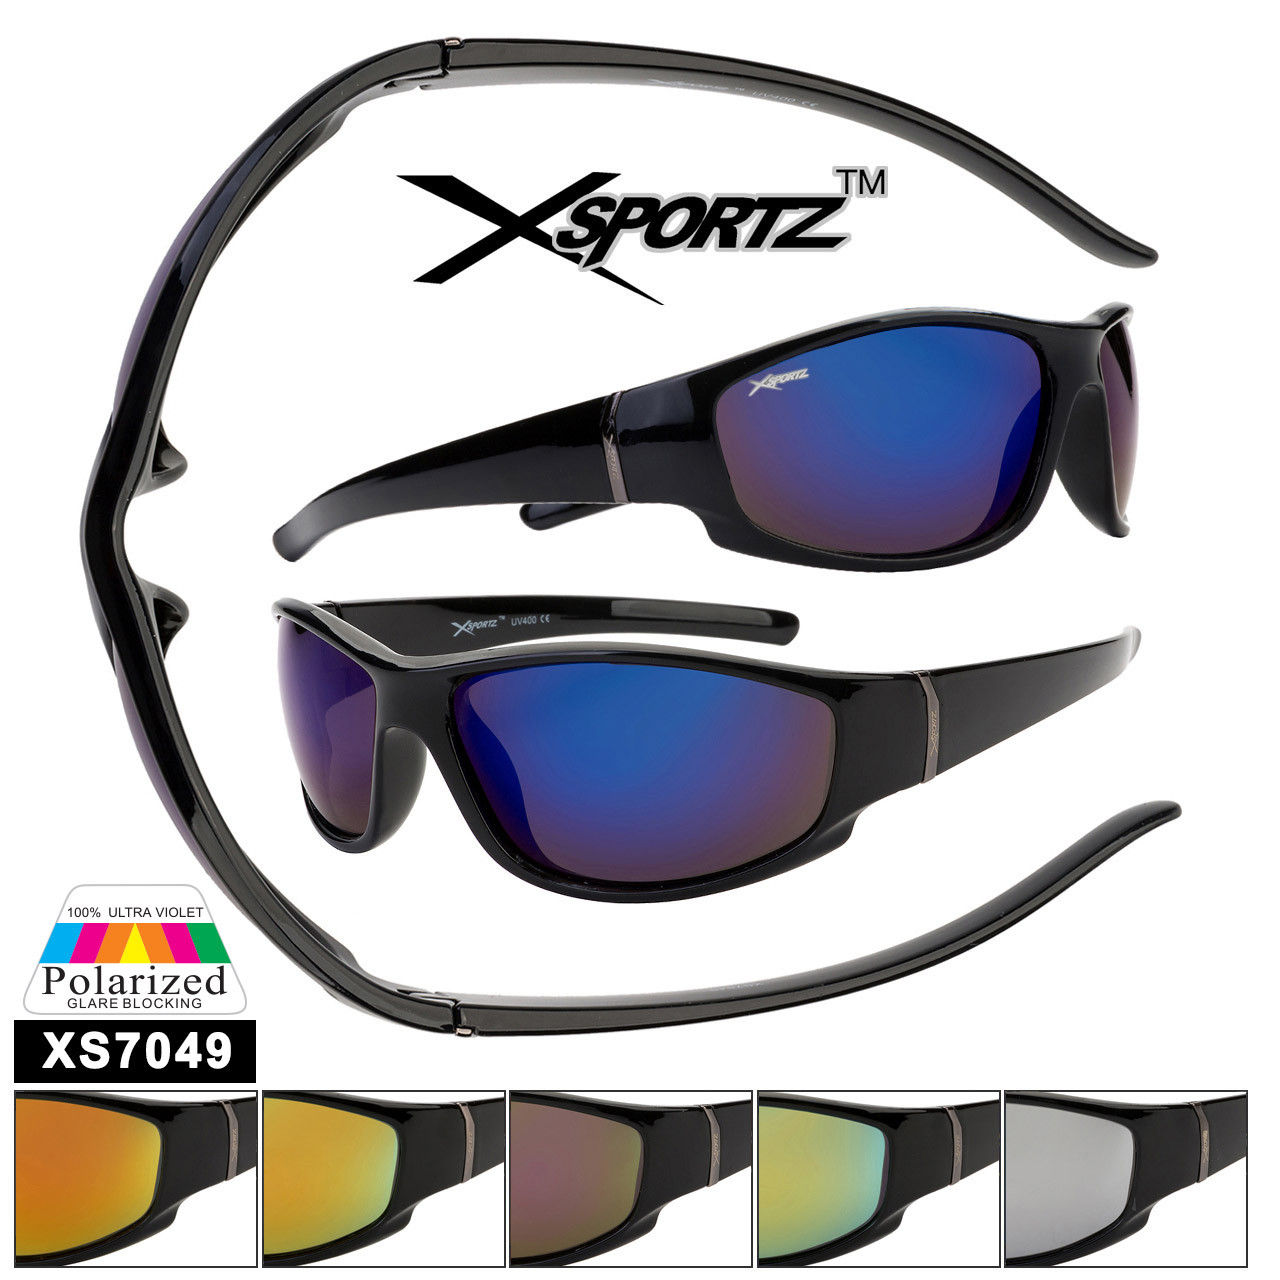 Polarized Xsportz™ Wholesale Sunglasses  - Style XS7049